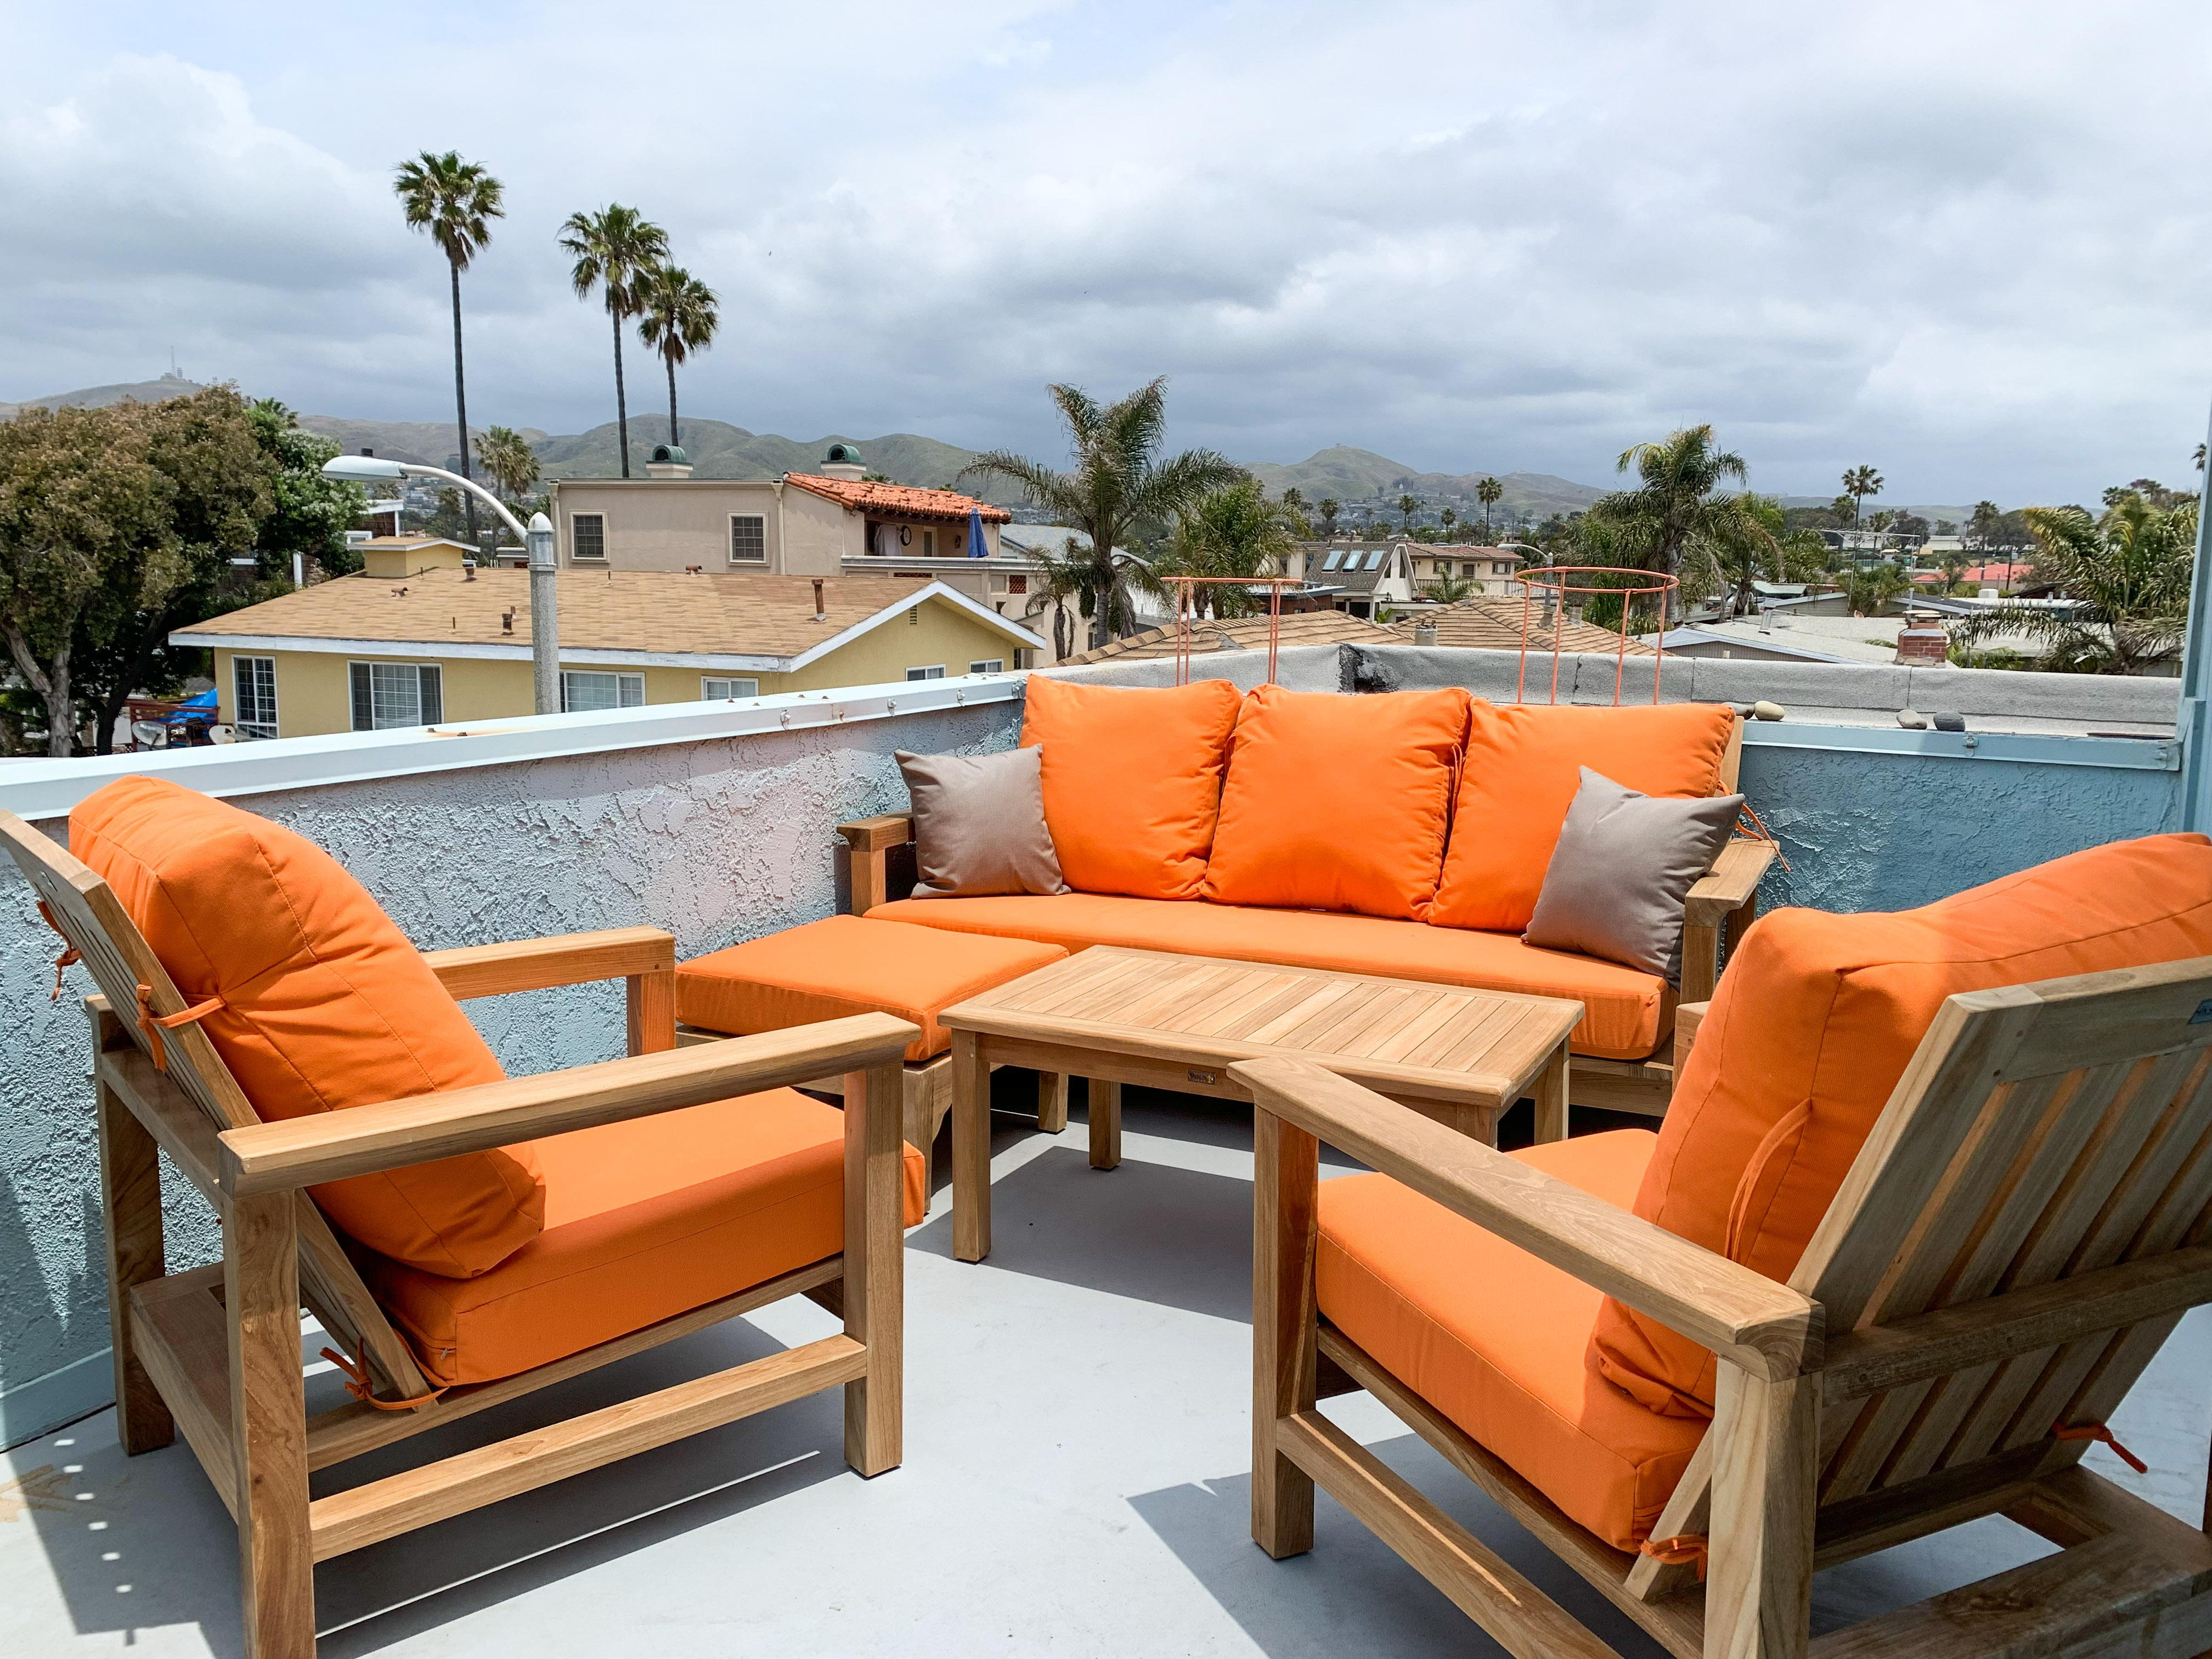 Welcome to Ventura! This beach house is professionally managed by TurnKey Vacation Rentals.